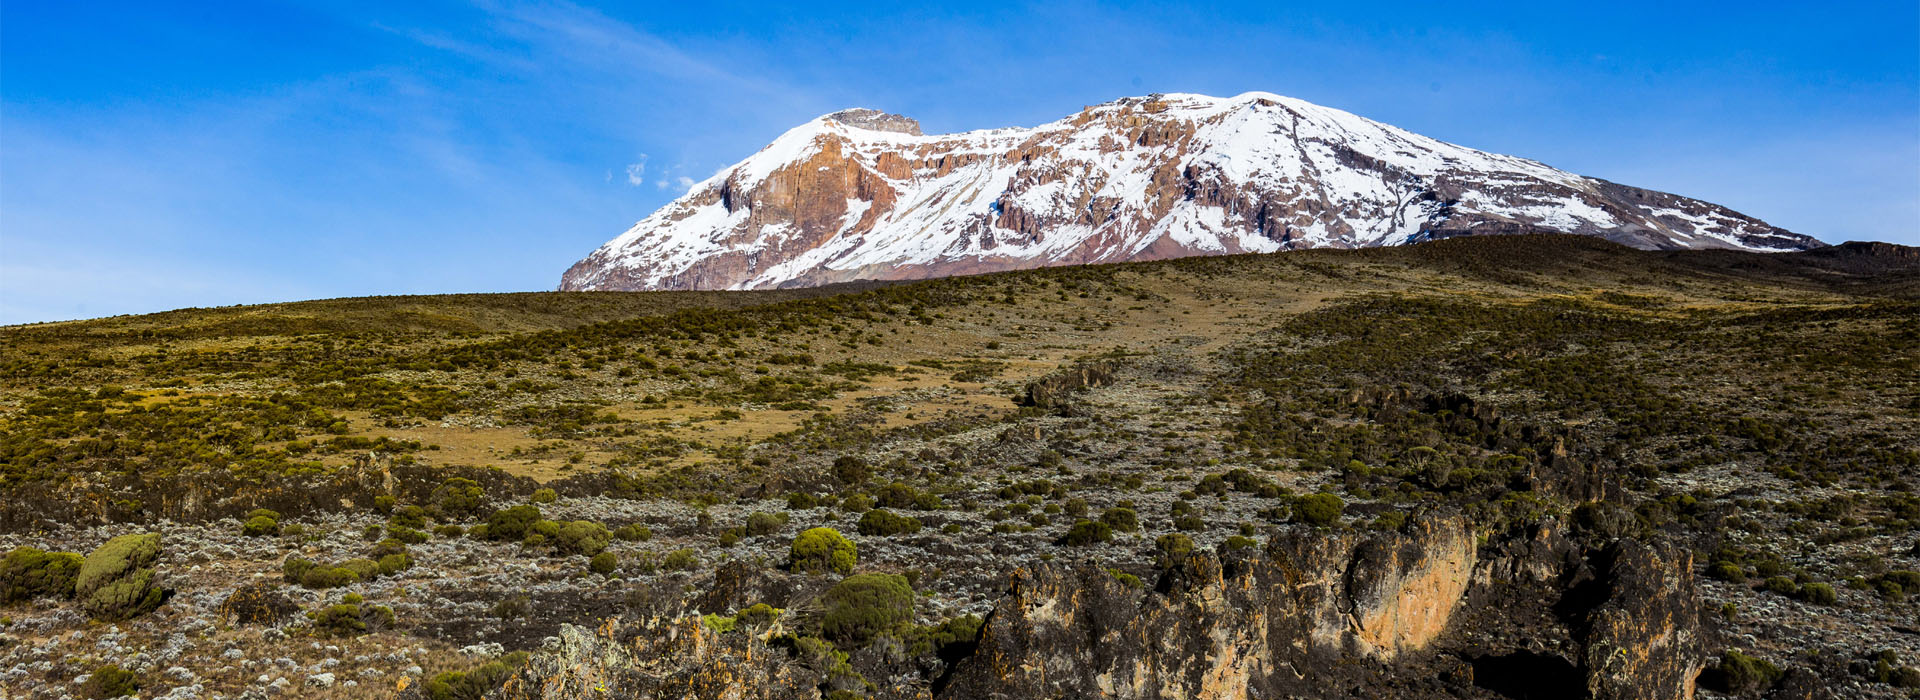 Mt. Kilimanjaro - The Roof Of Africa - African Adventure Specialists